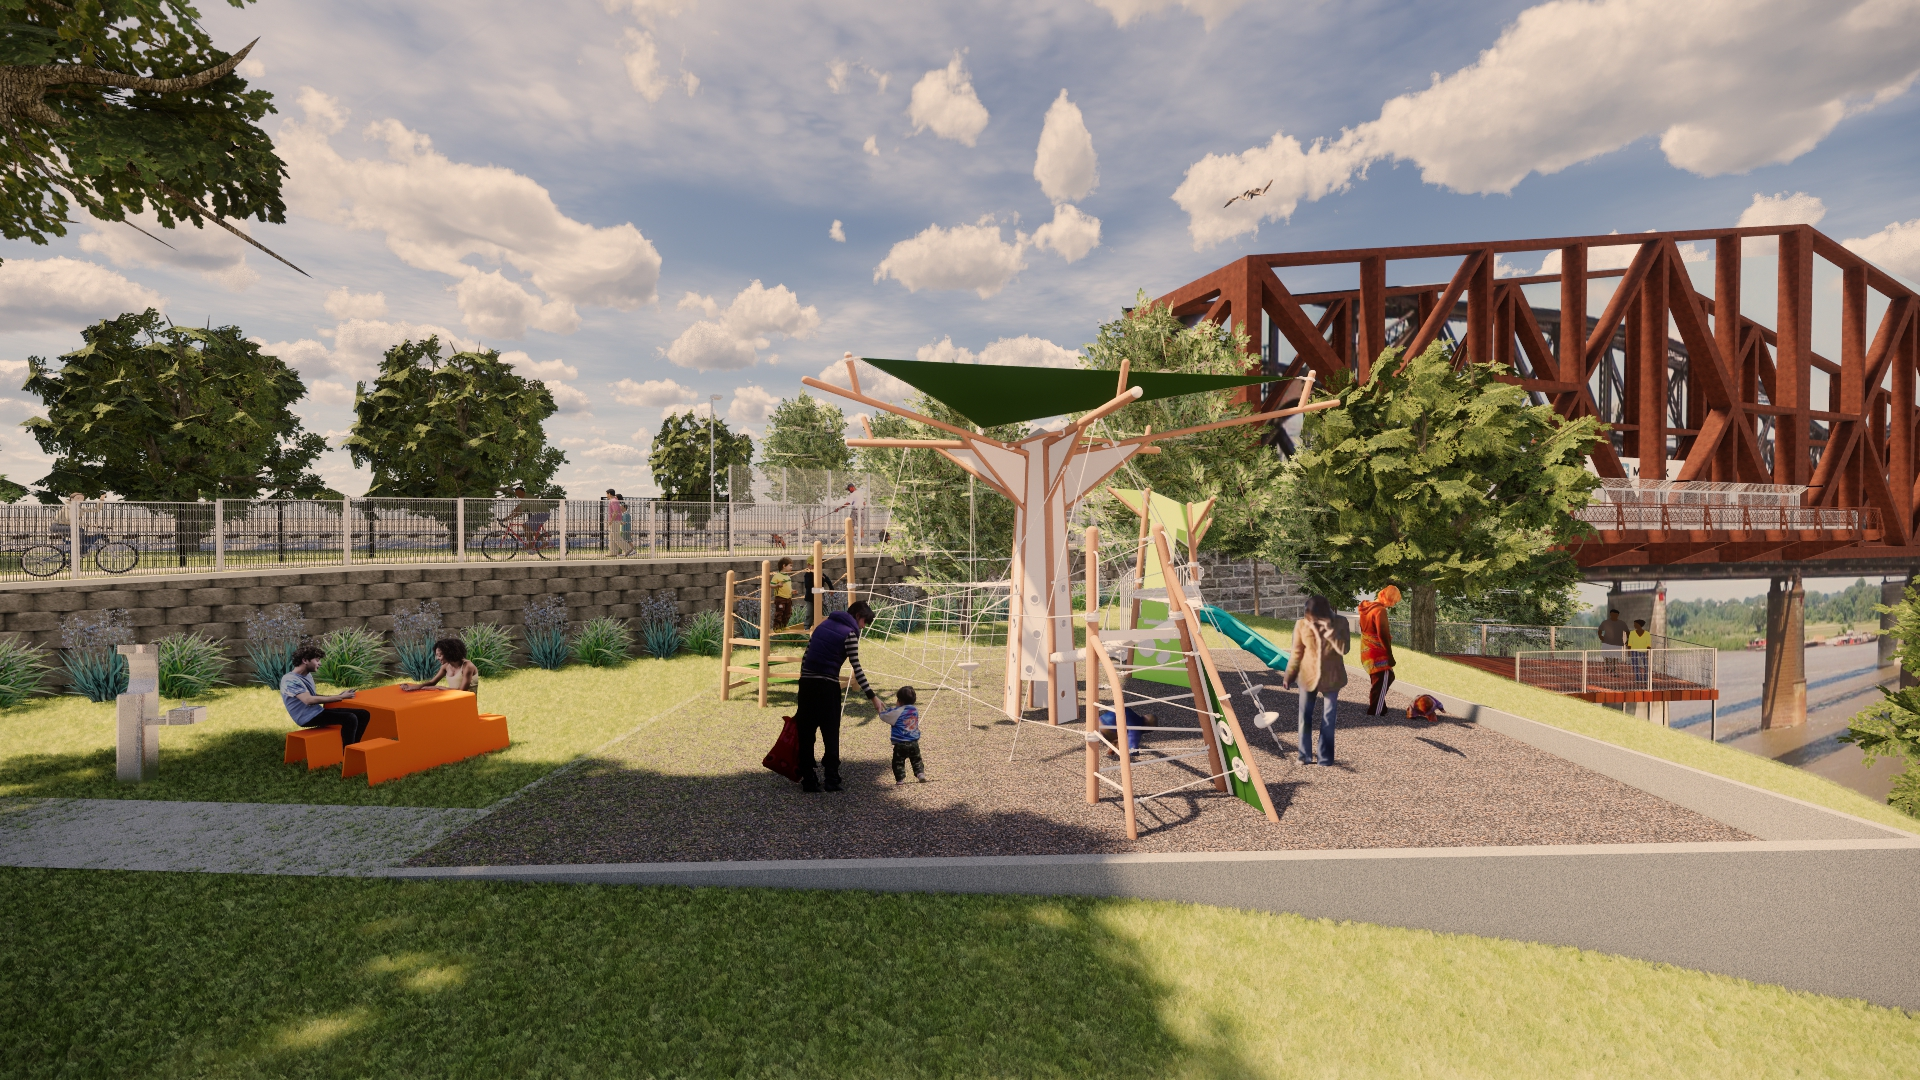 A conceptual rendering created voluntarily by church member Kate Haygood of brg3s architects to show how a portion of the playground might ultimately look. The items seen in the rendering are only rough concepts and not final designs.